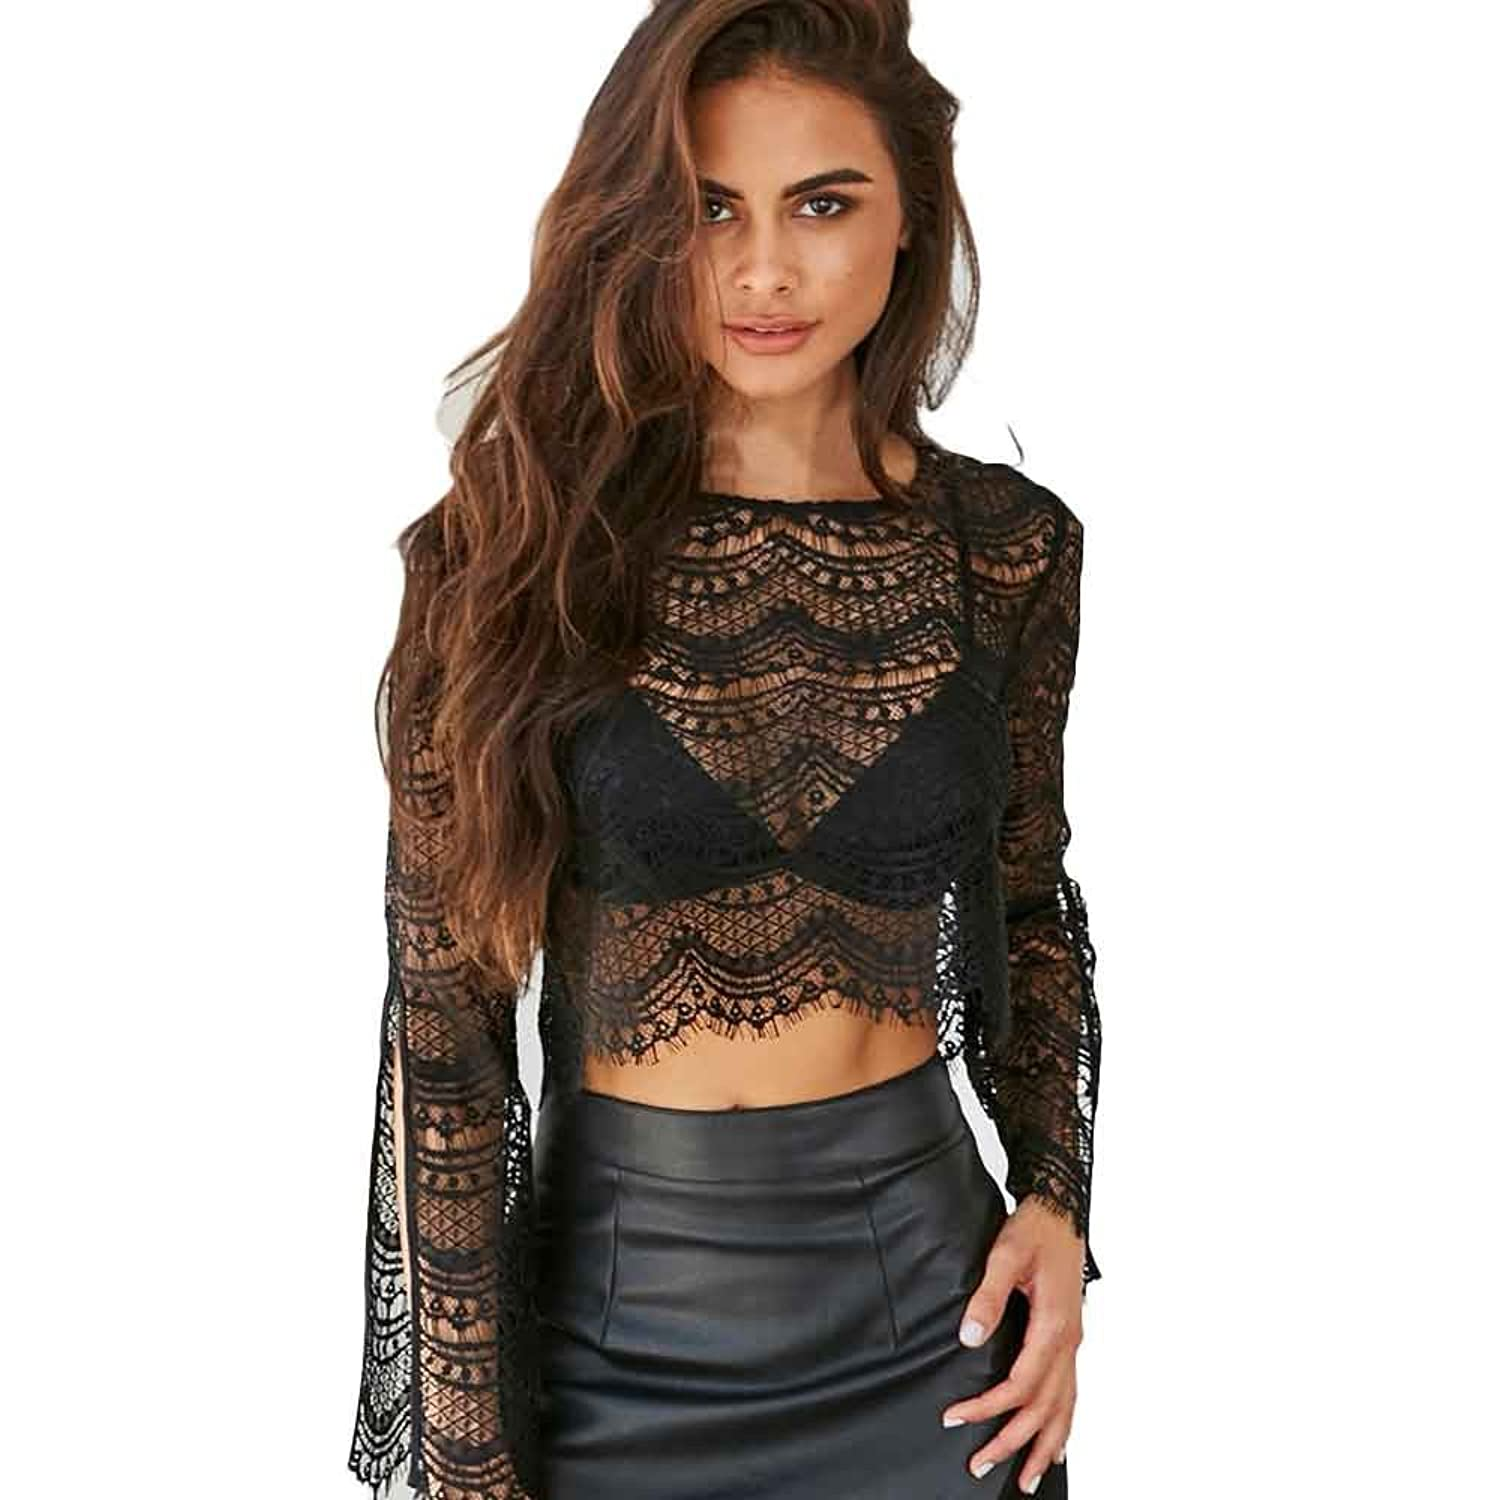 Kinghard Women Lace Tank Top Summer Sexy Hollow Out Long Sleeve Top